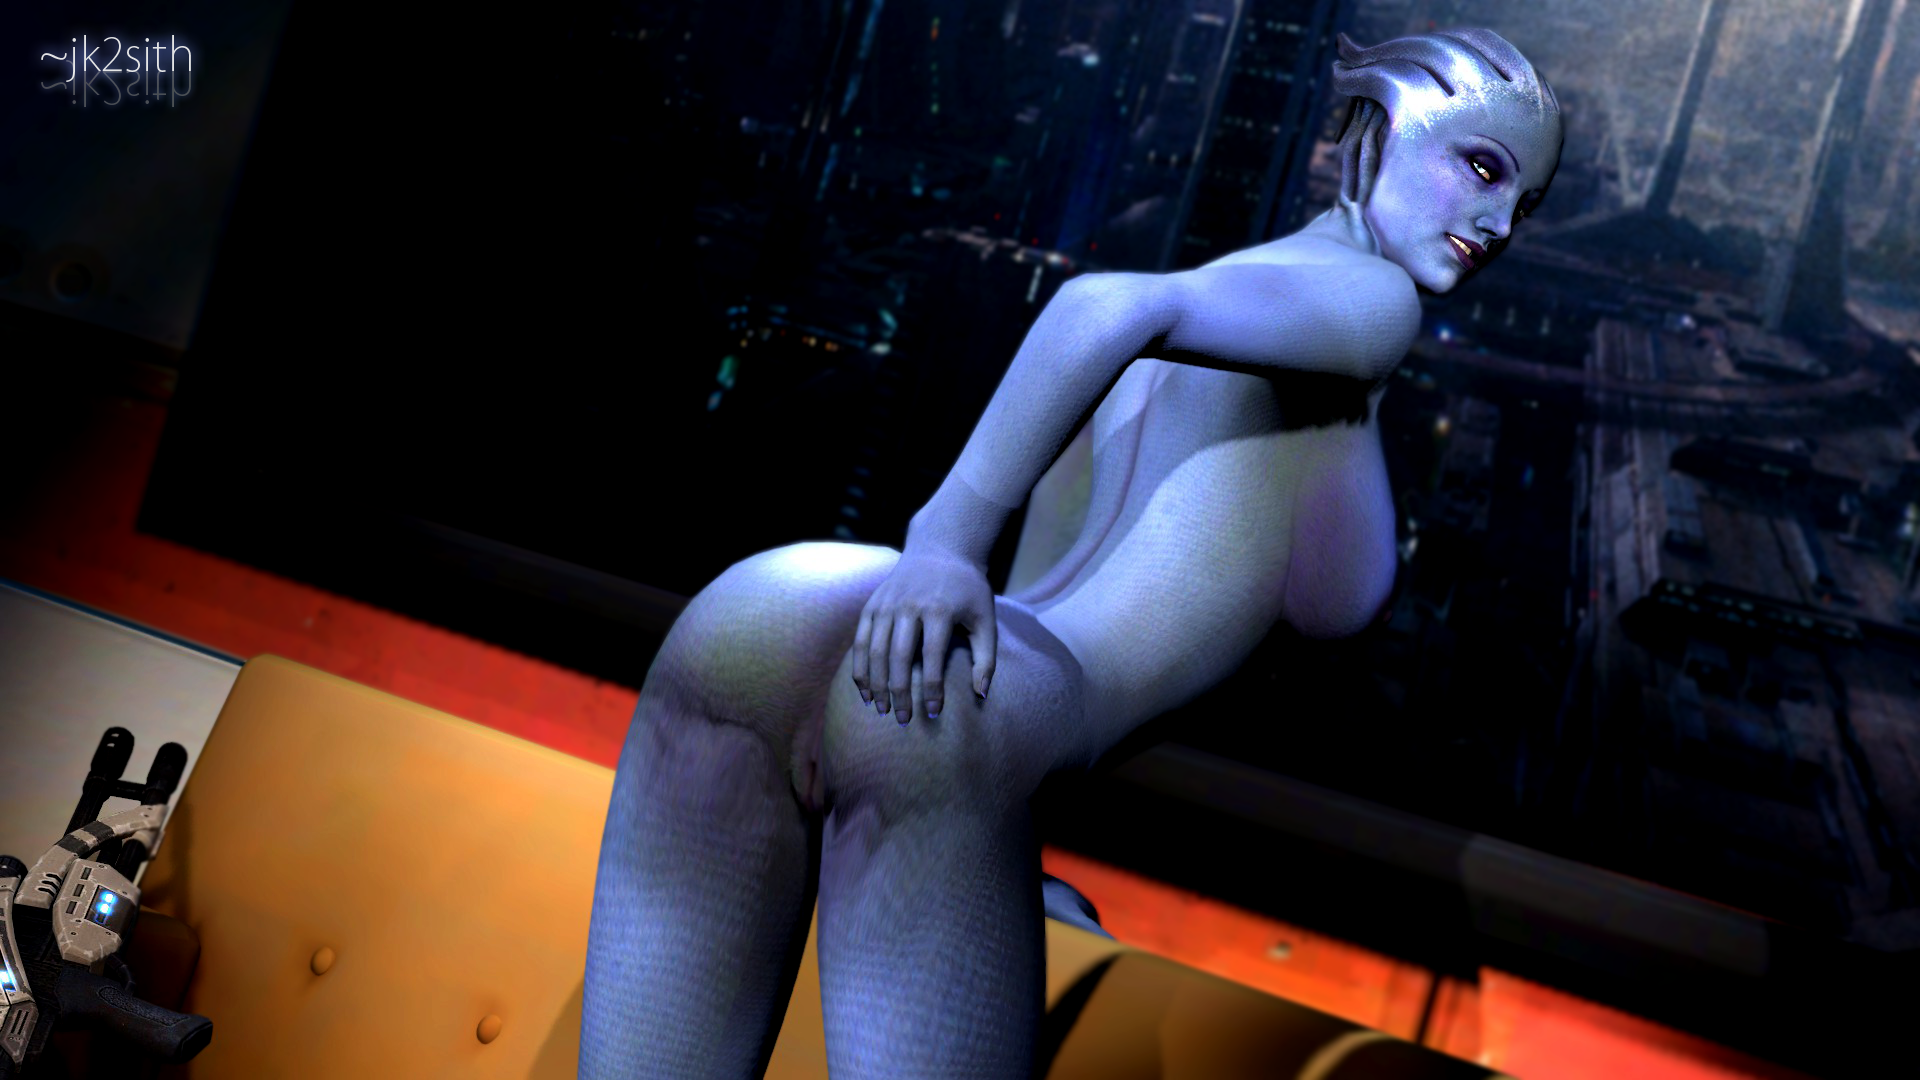 Mass effect liara nud mod anime films